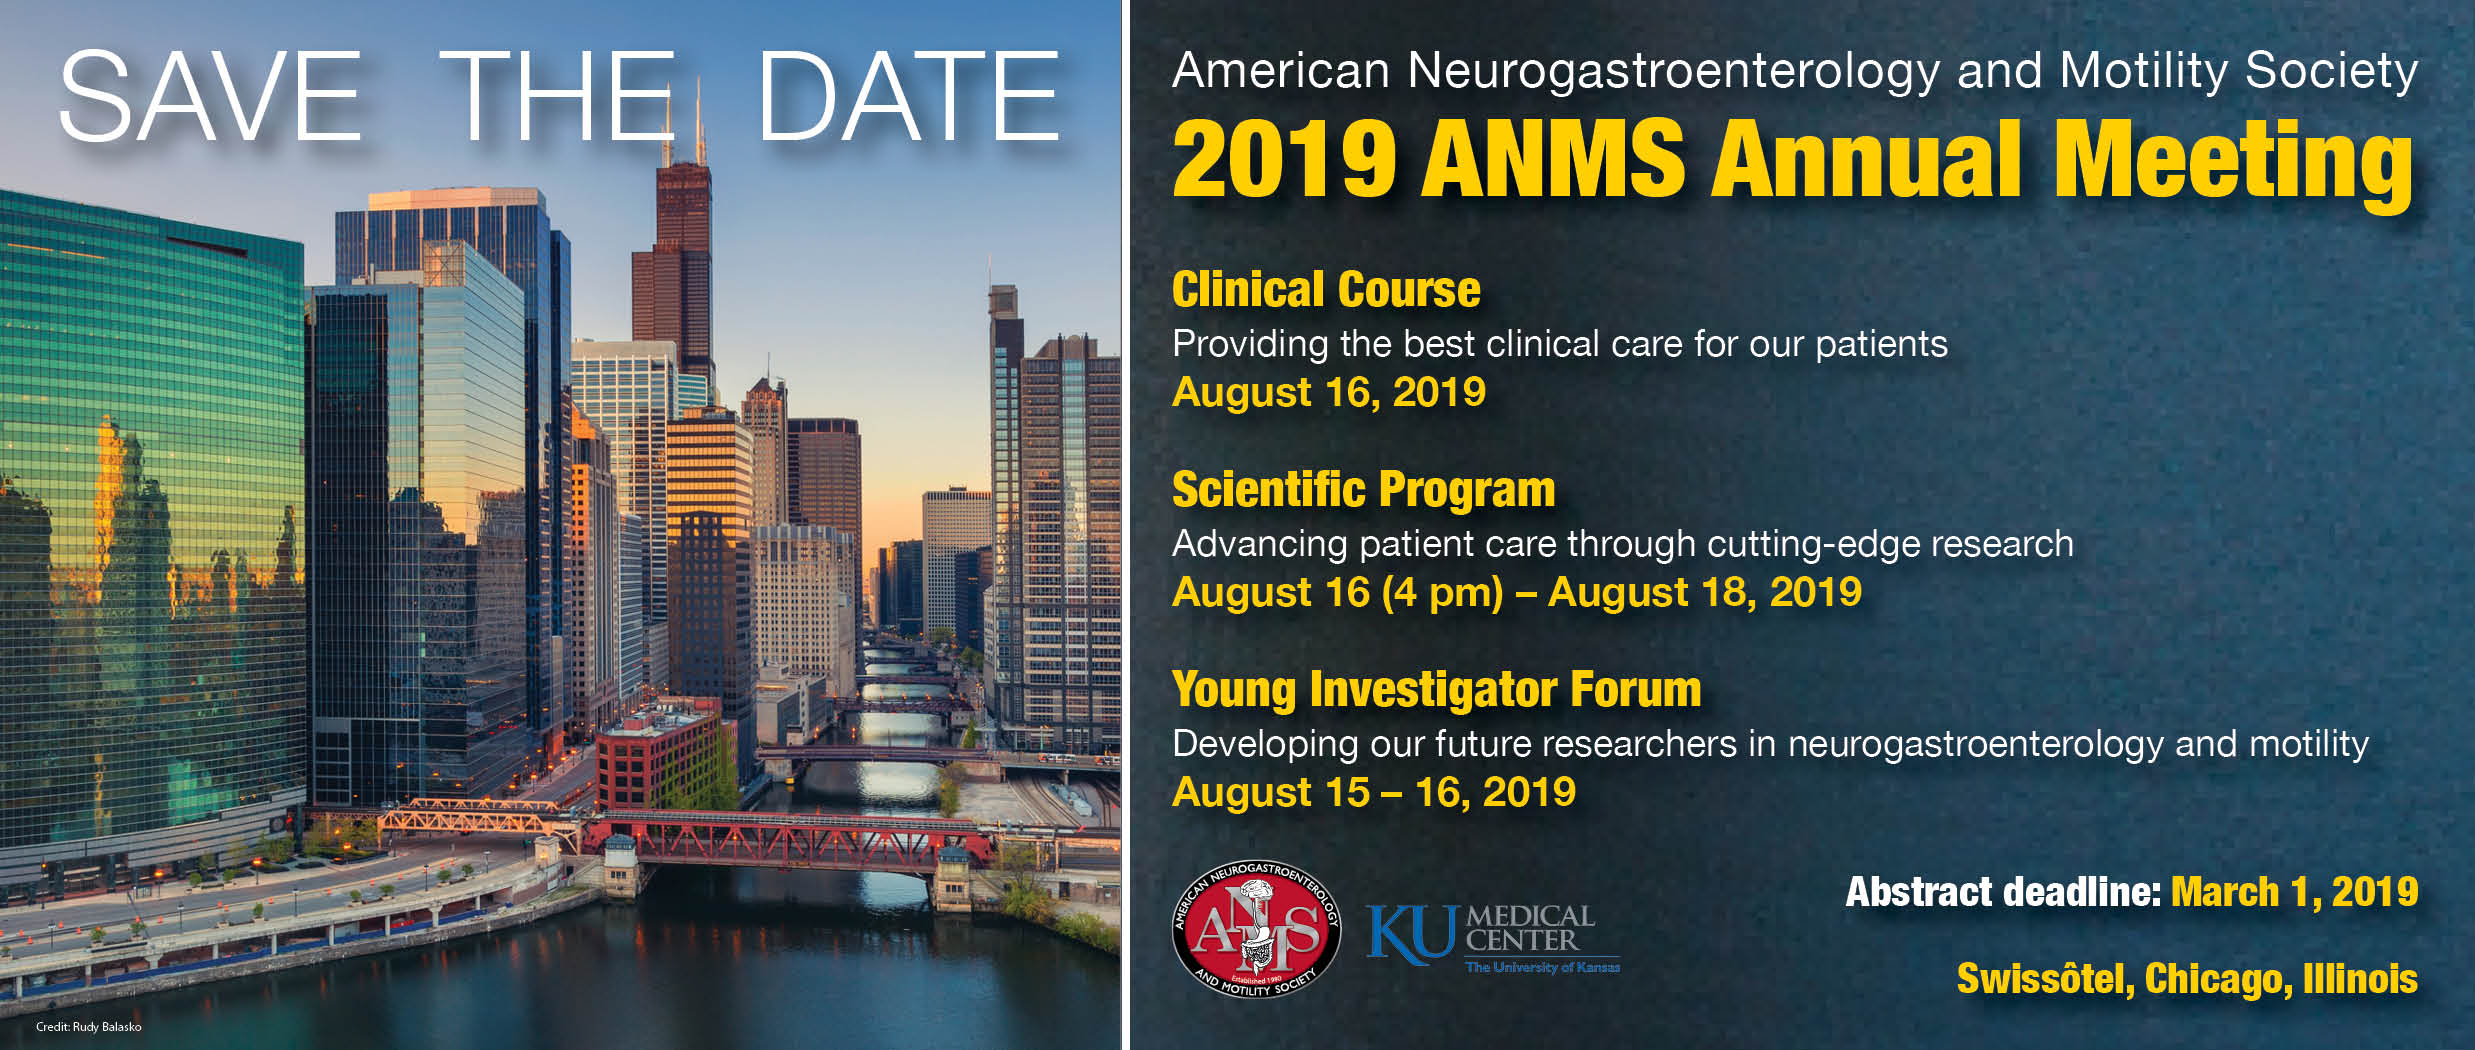 2019 ANMS Annual Meeting